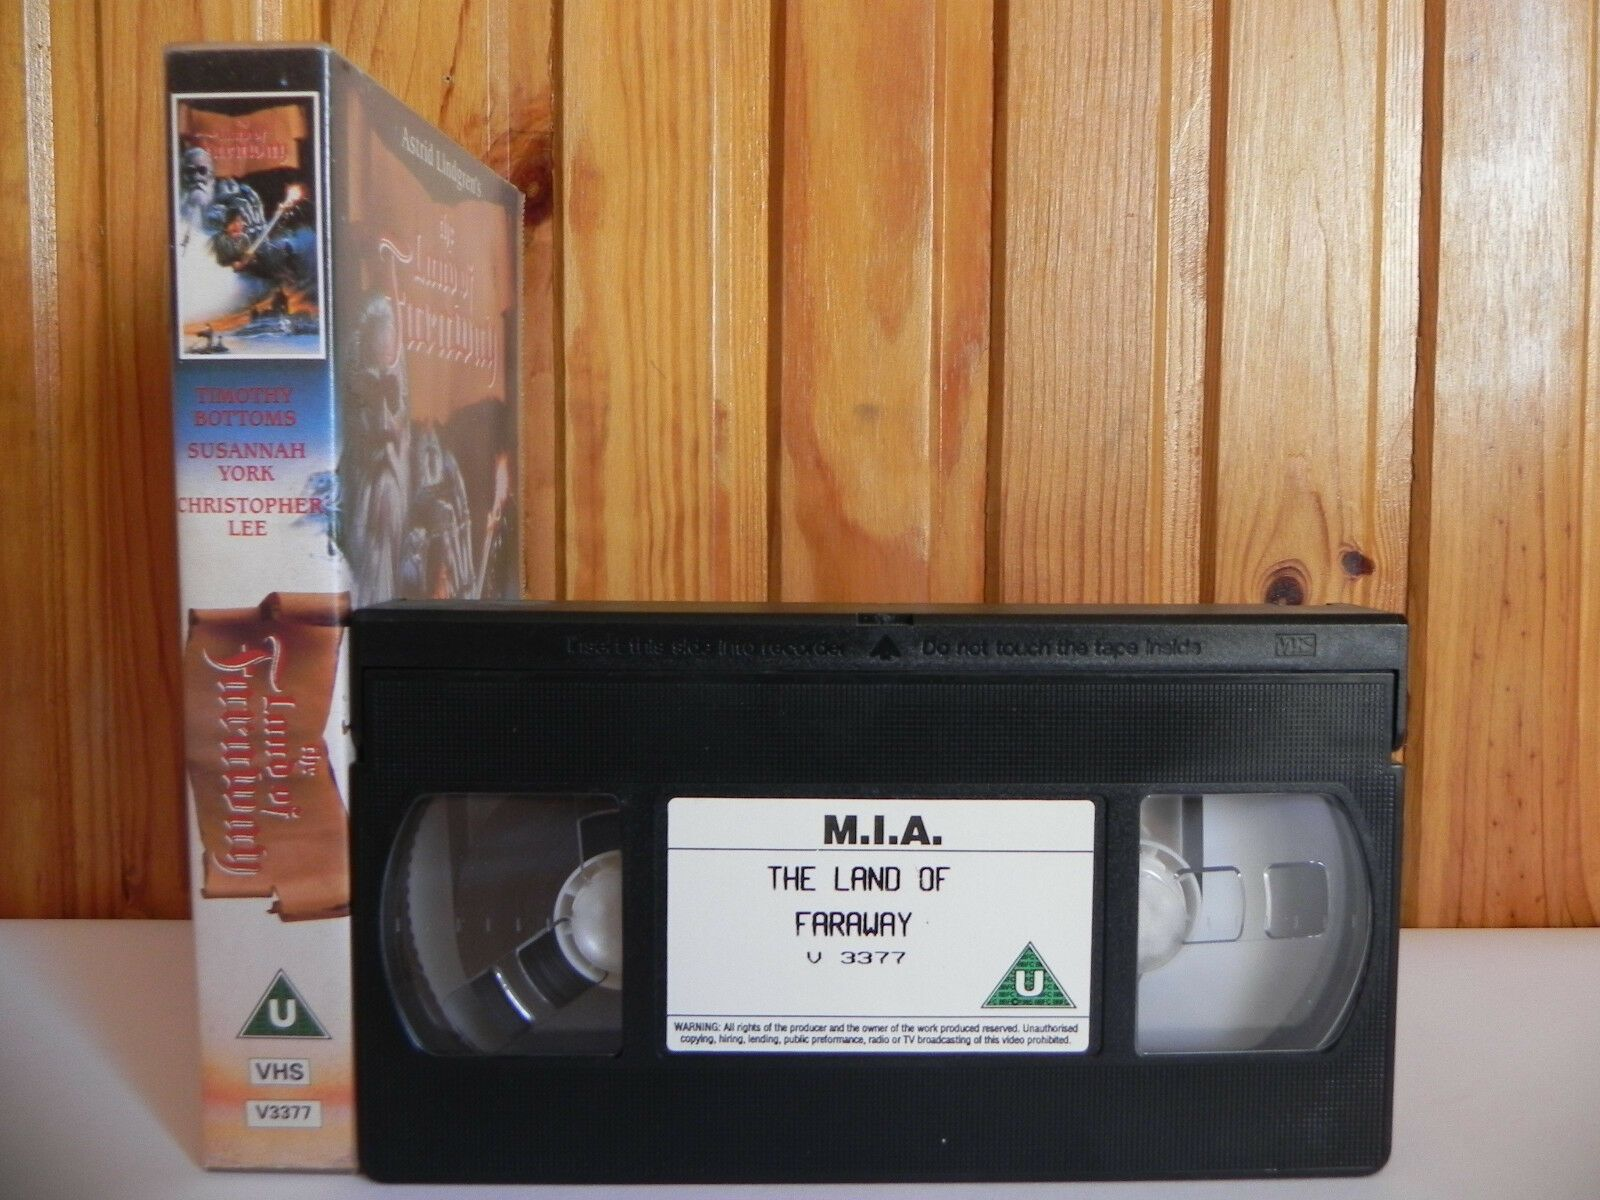 The Land Of Faraway - M.I.A. - Fantasy - Adventure - Christopher Lee - Pal VHS